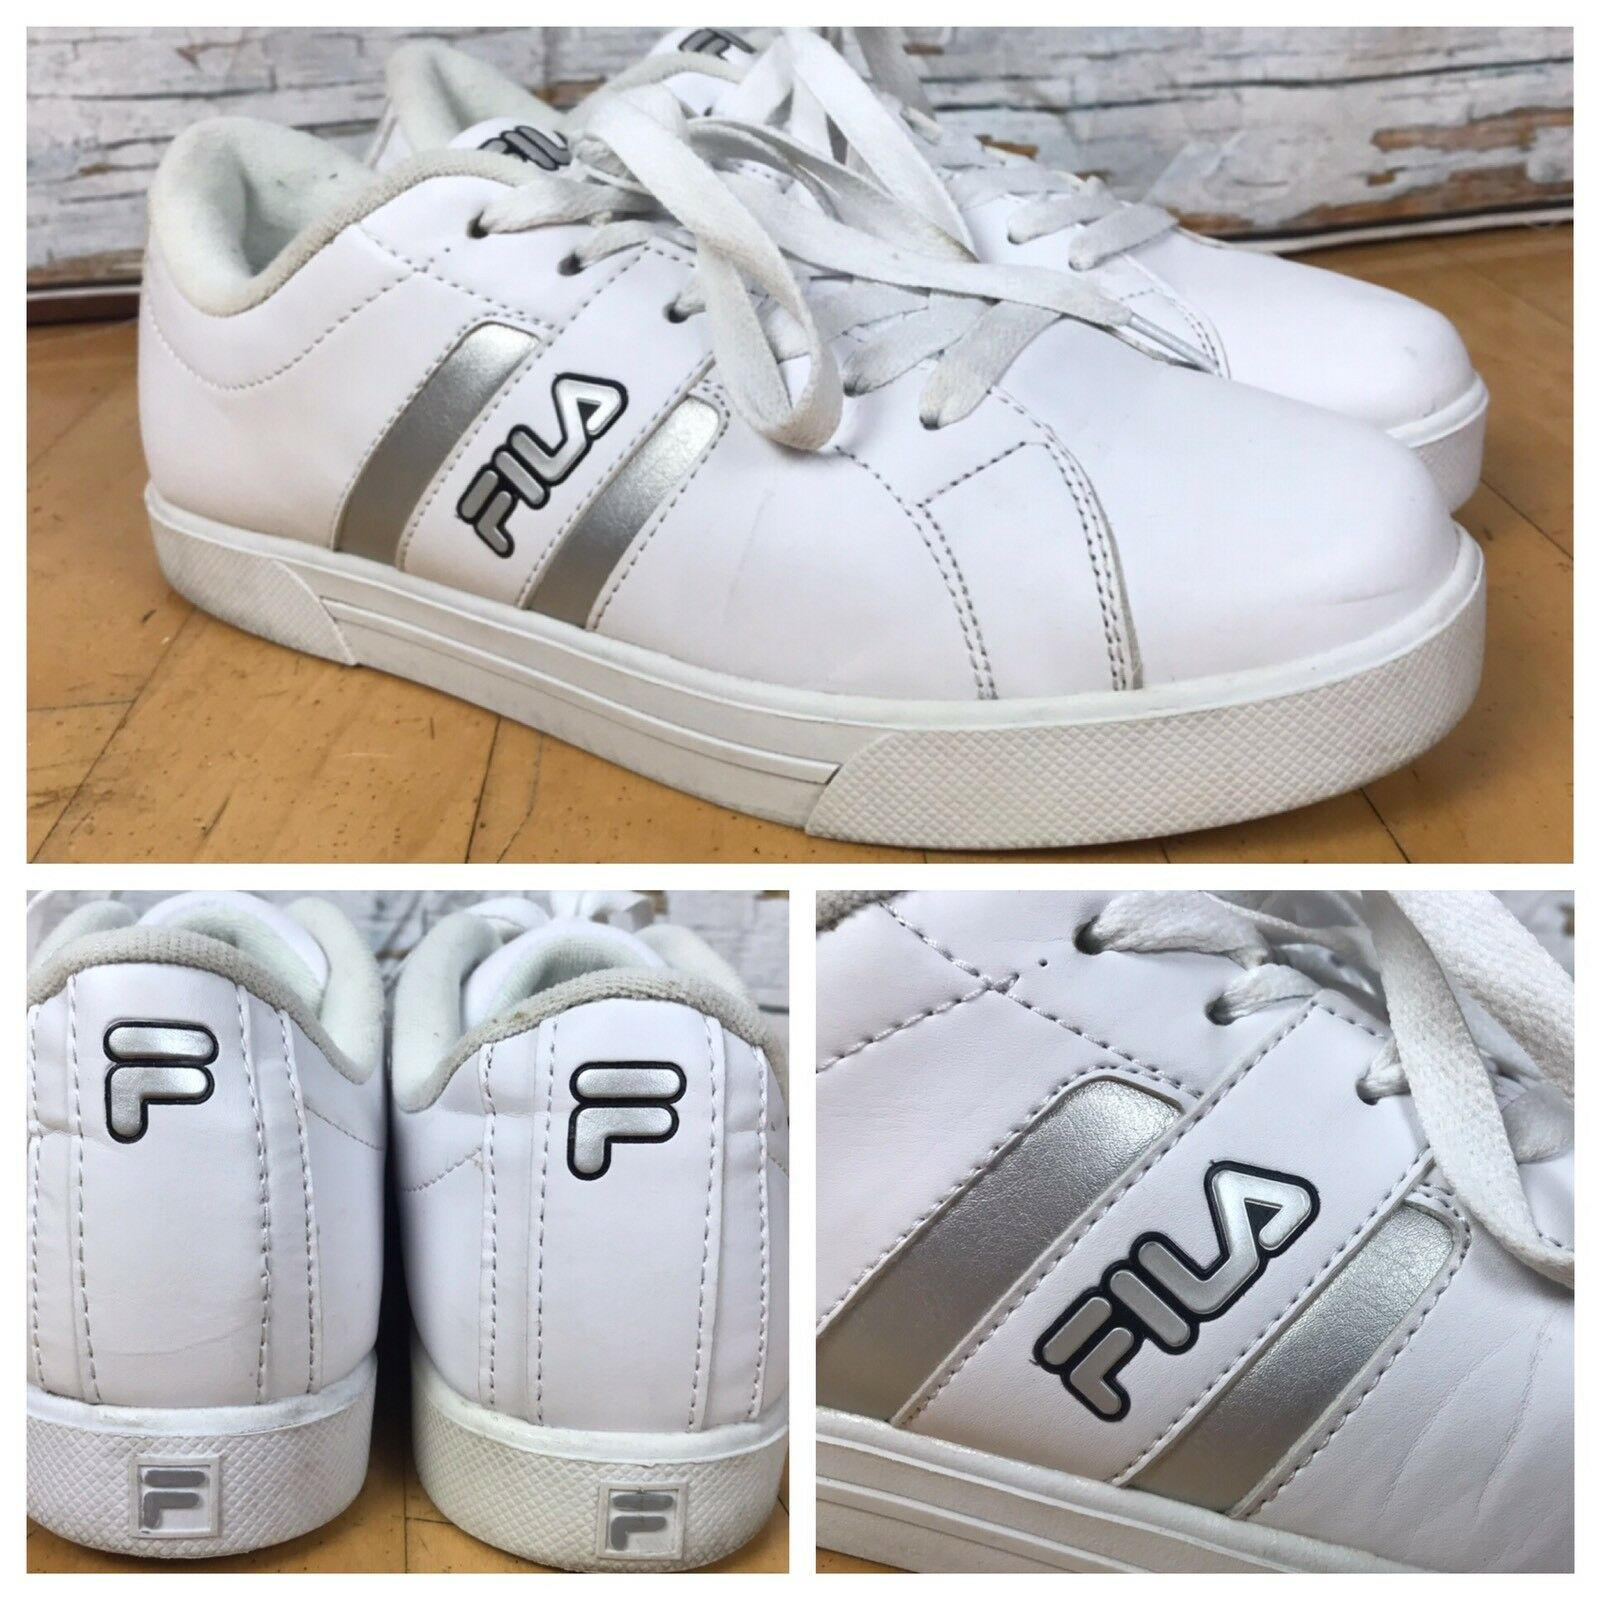 FILA White Silver 1SC50113-101 Trim 1SC50113-101 Silver Leather Shoes Tennis Sneaker Mens Size 9.5 ca81cb